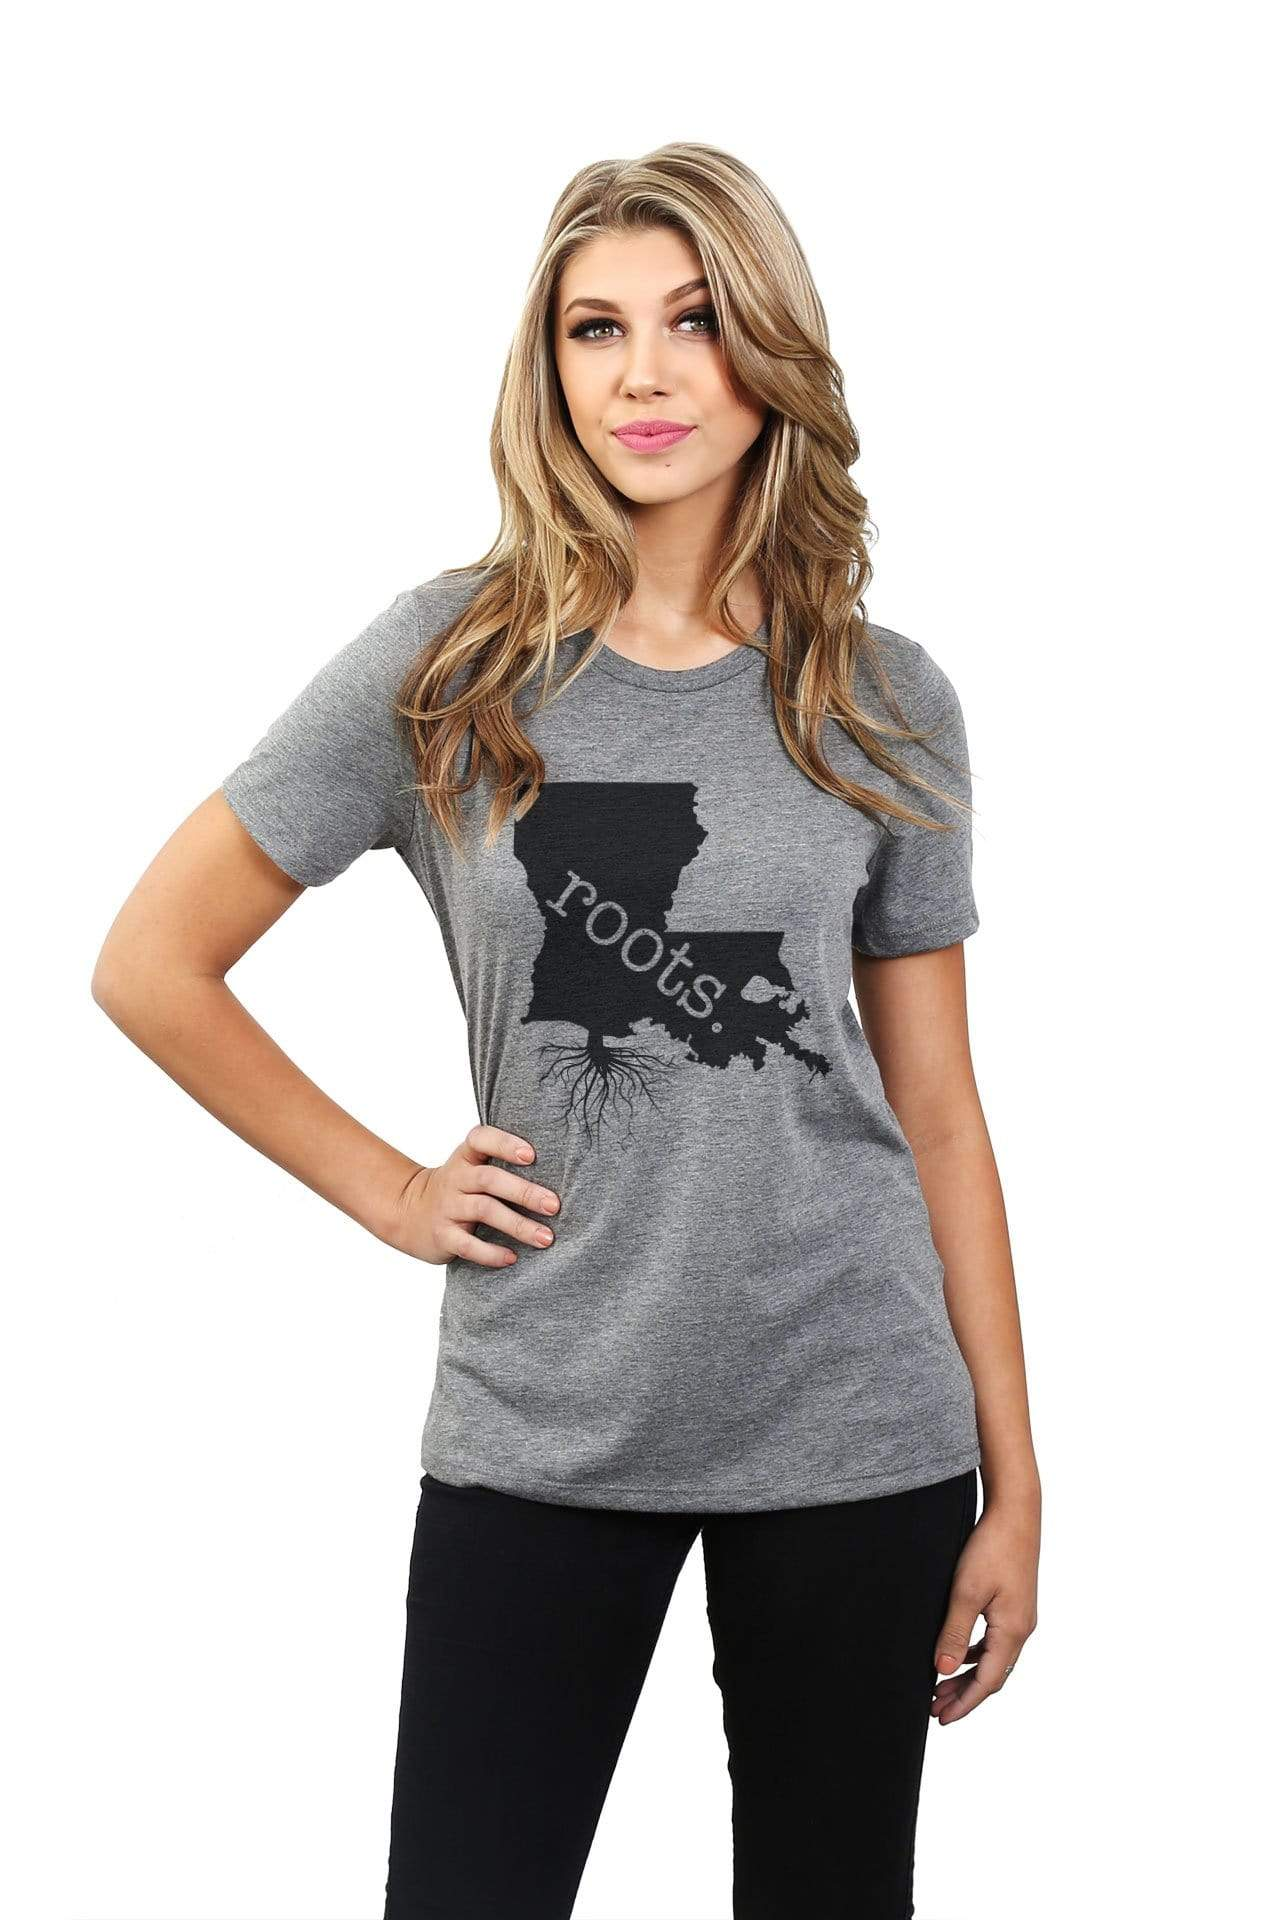 Home Roots State Louisiana LA Women Heather Grey Relaxed Crew T-Shirt Tee Top